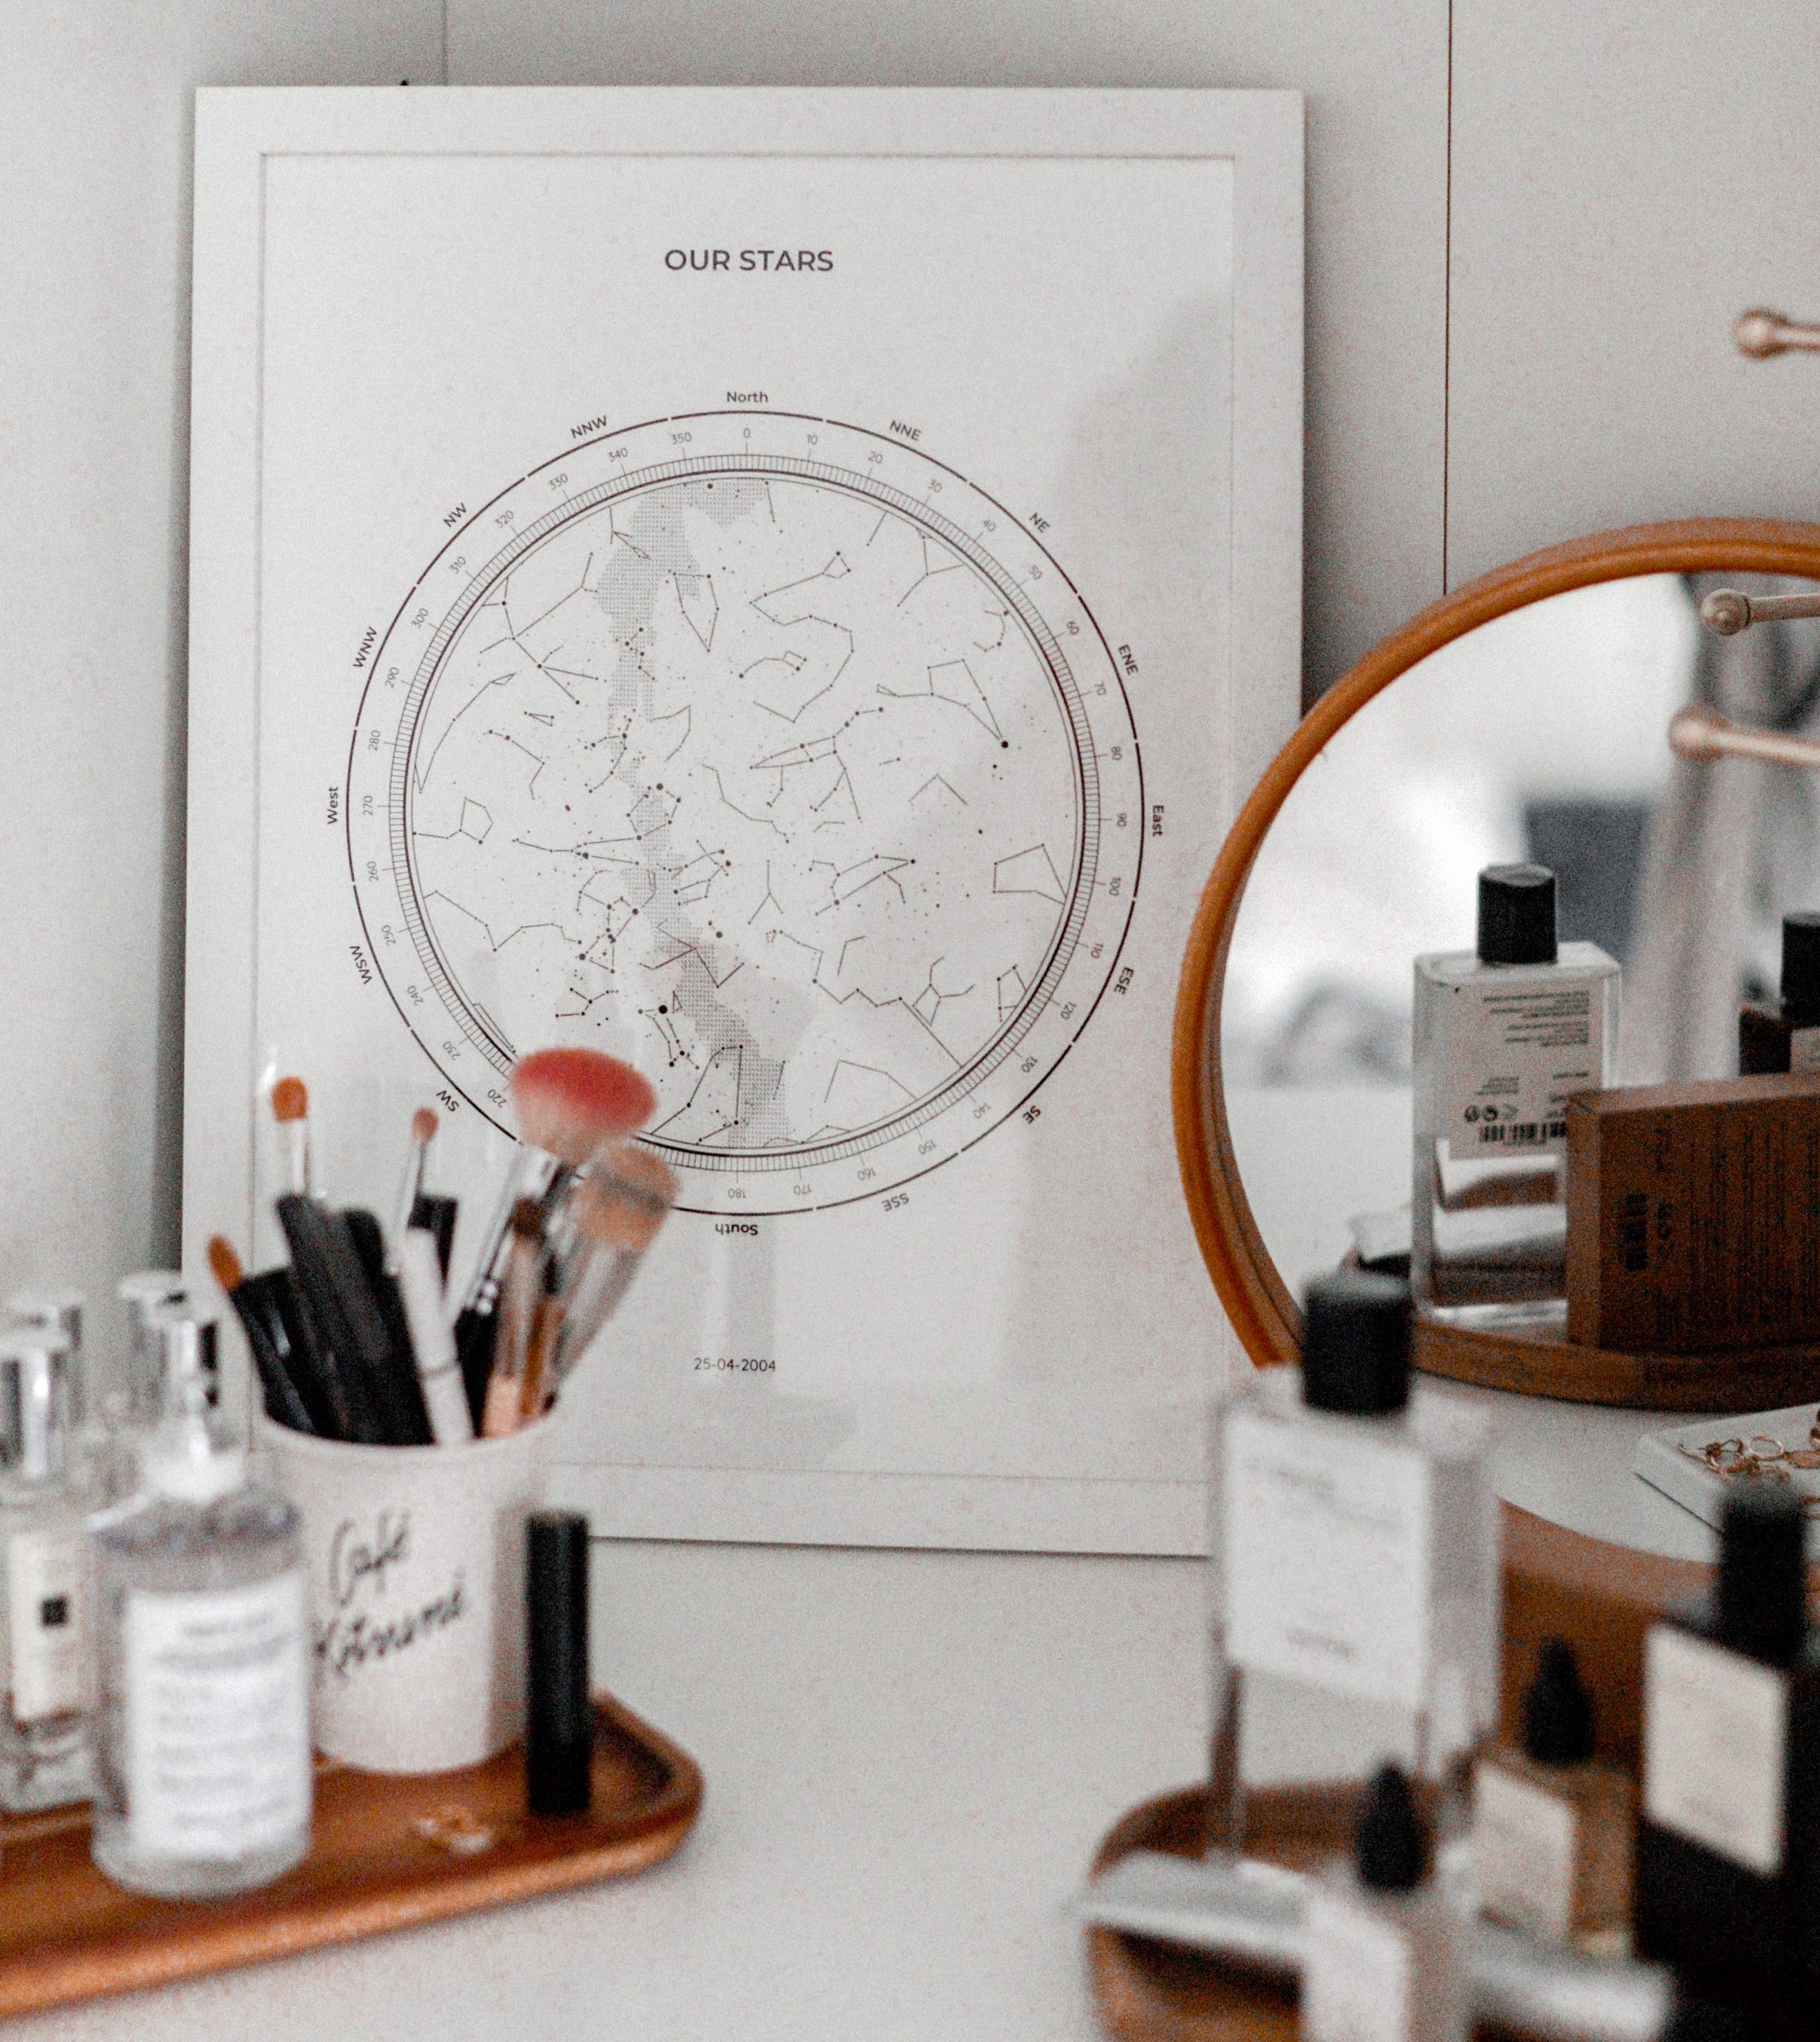 Boho Loves: Under Lucky Stars - Create Your Own Beautifully Designed Star Map